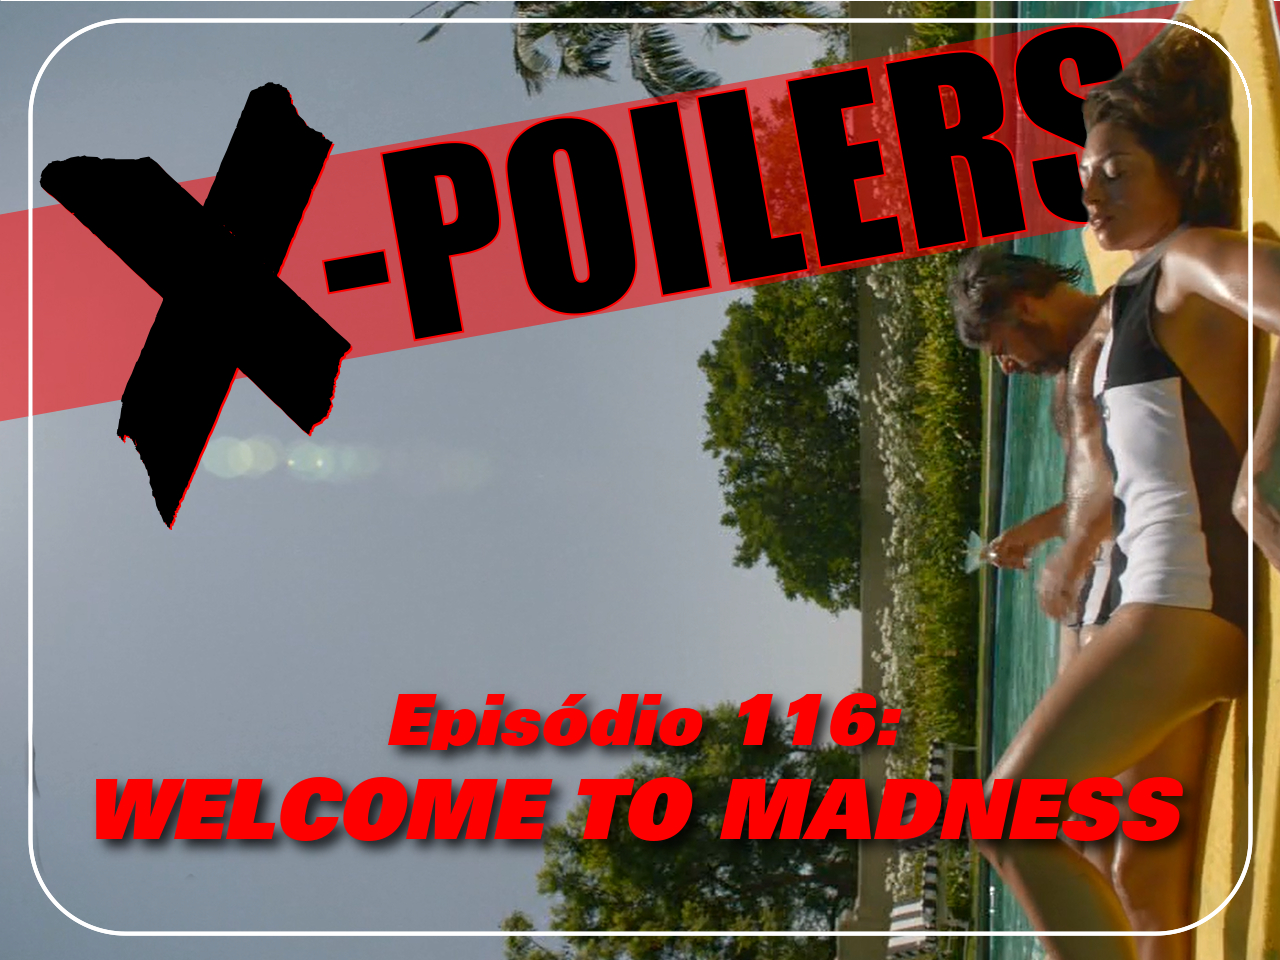 Welcome to madness